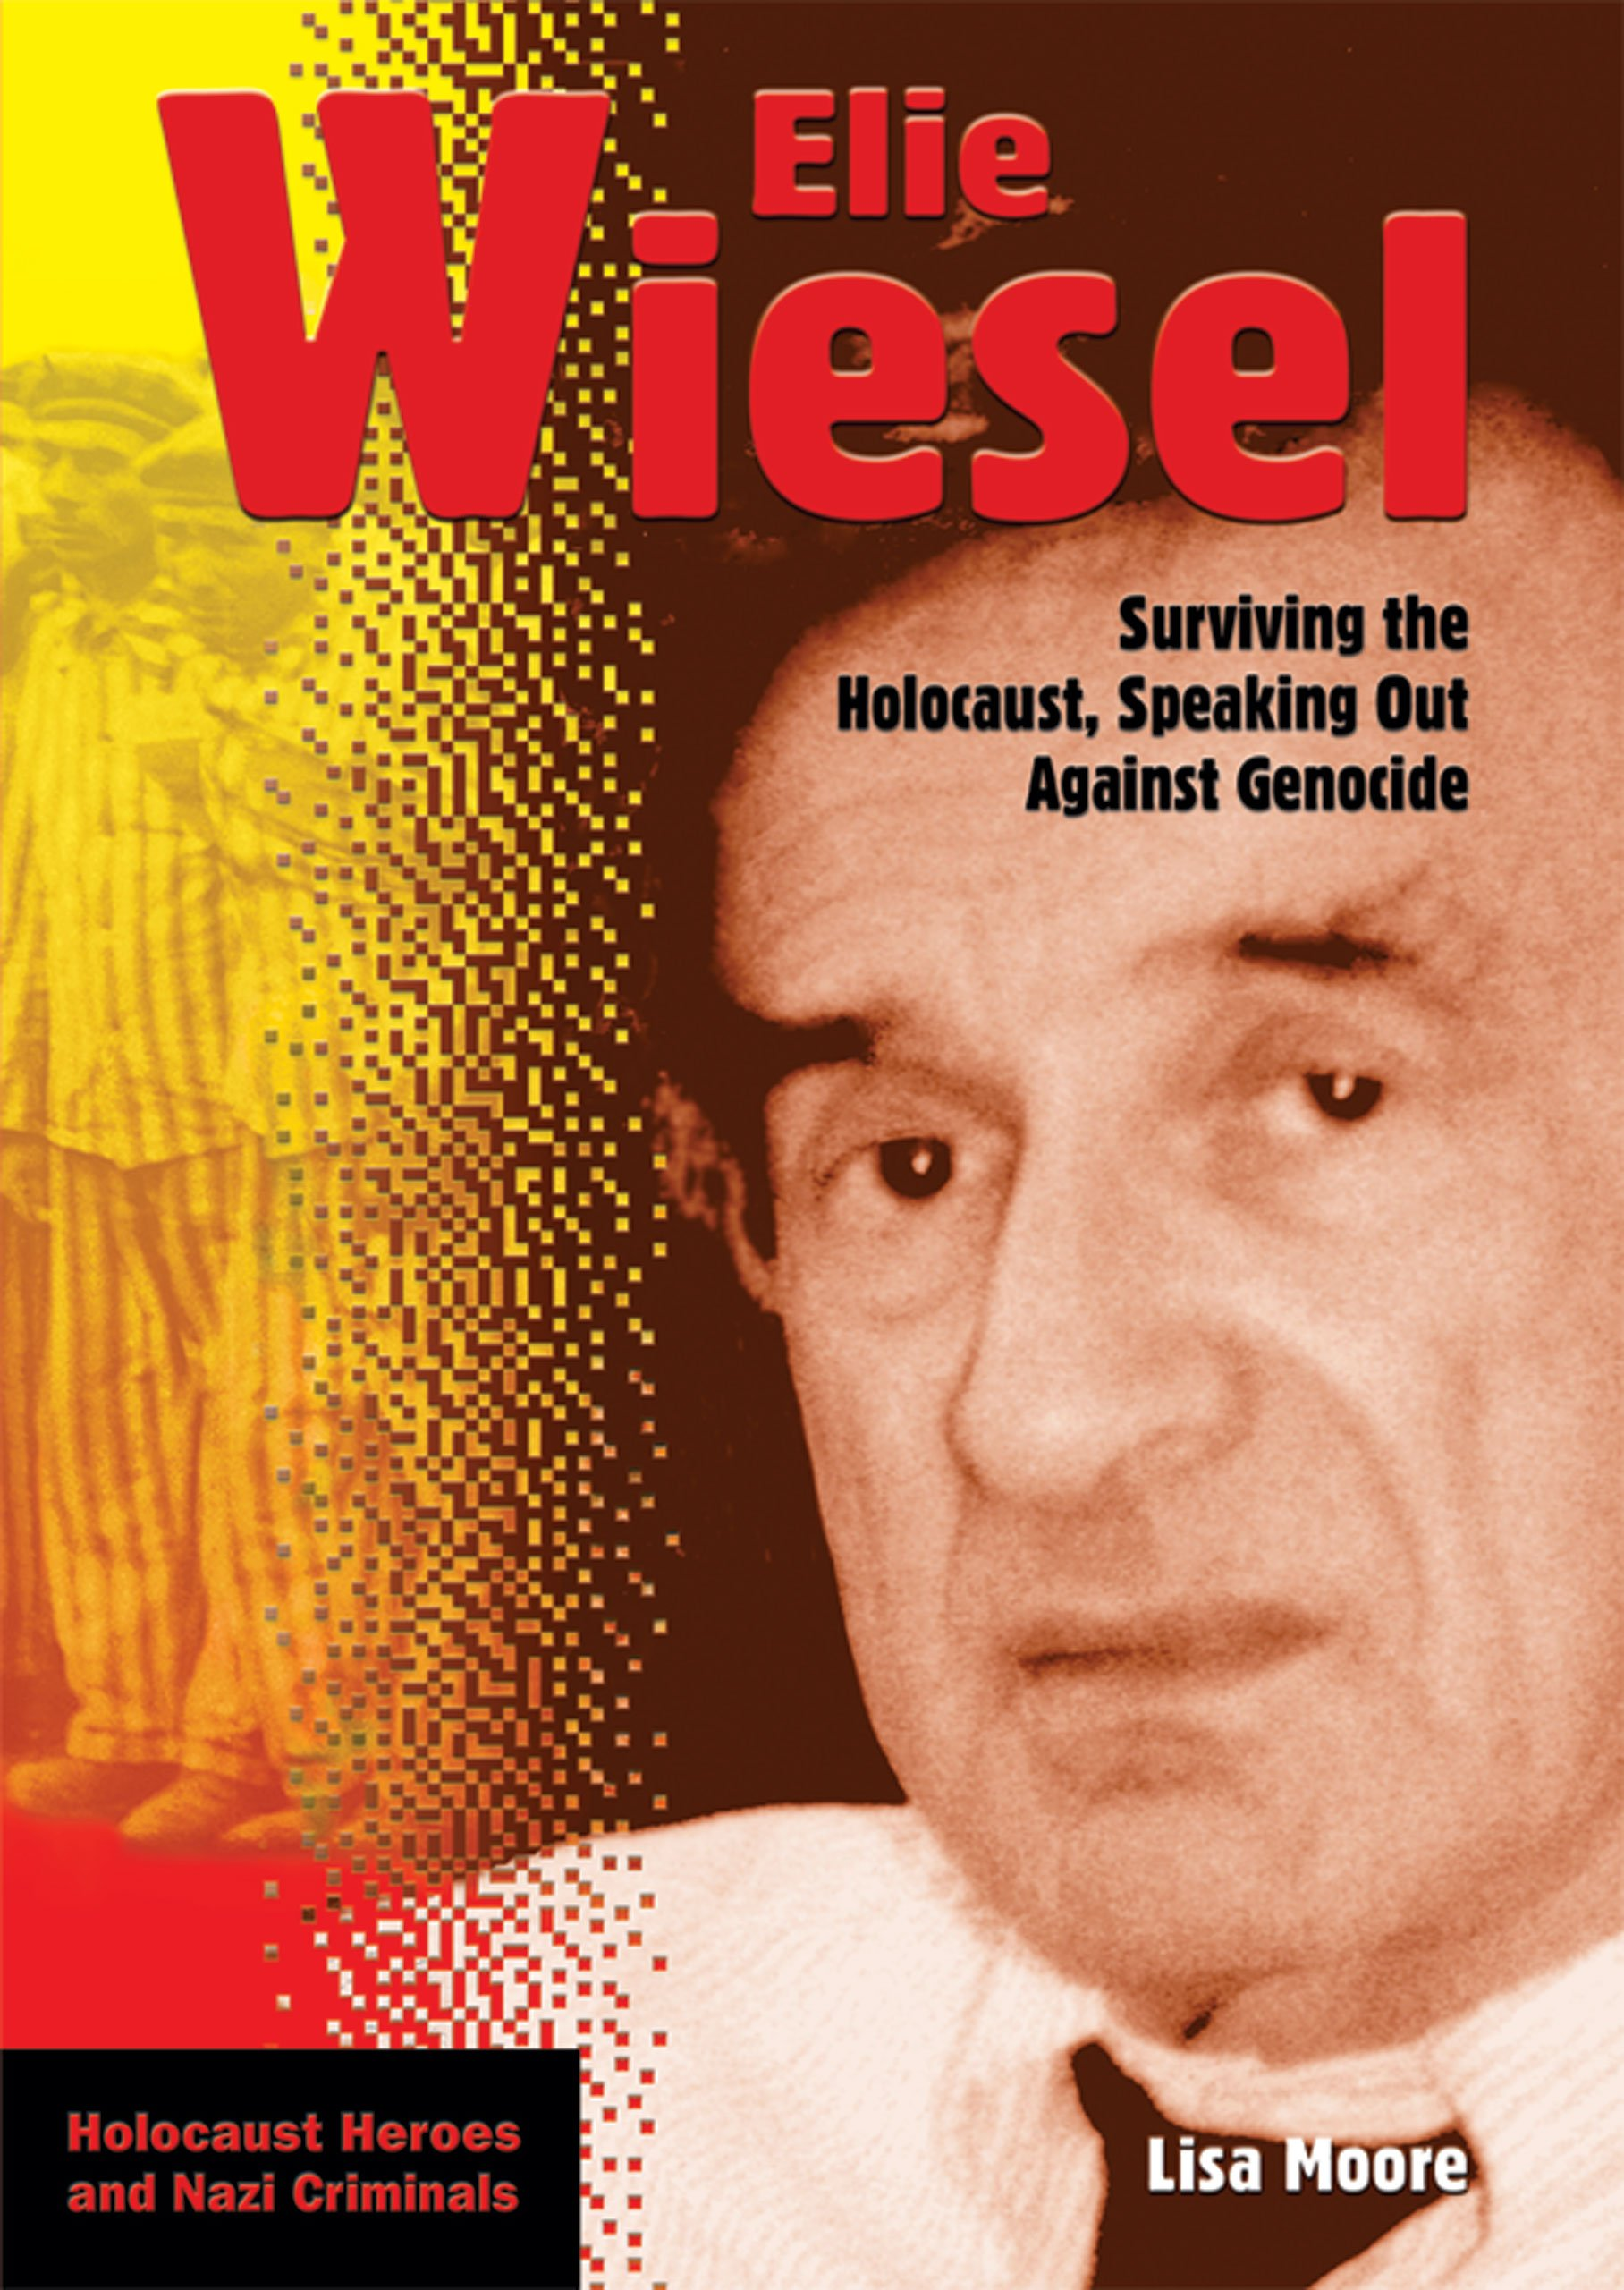 Elie Wiesel: Surviving The Holocaust, Speaking Out Against Genocide (HOLOCAUST HEROES AND NAZI CRIMINALS)